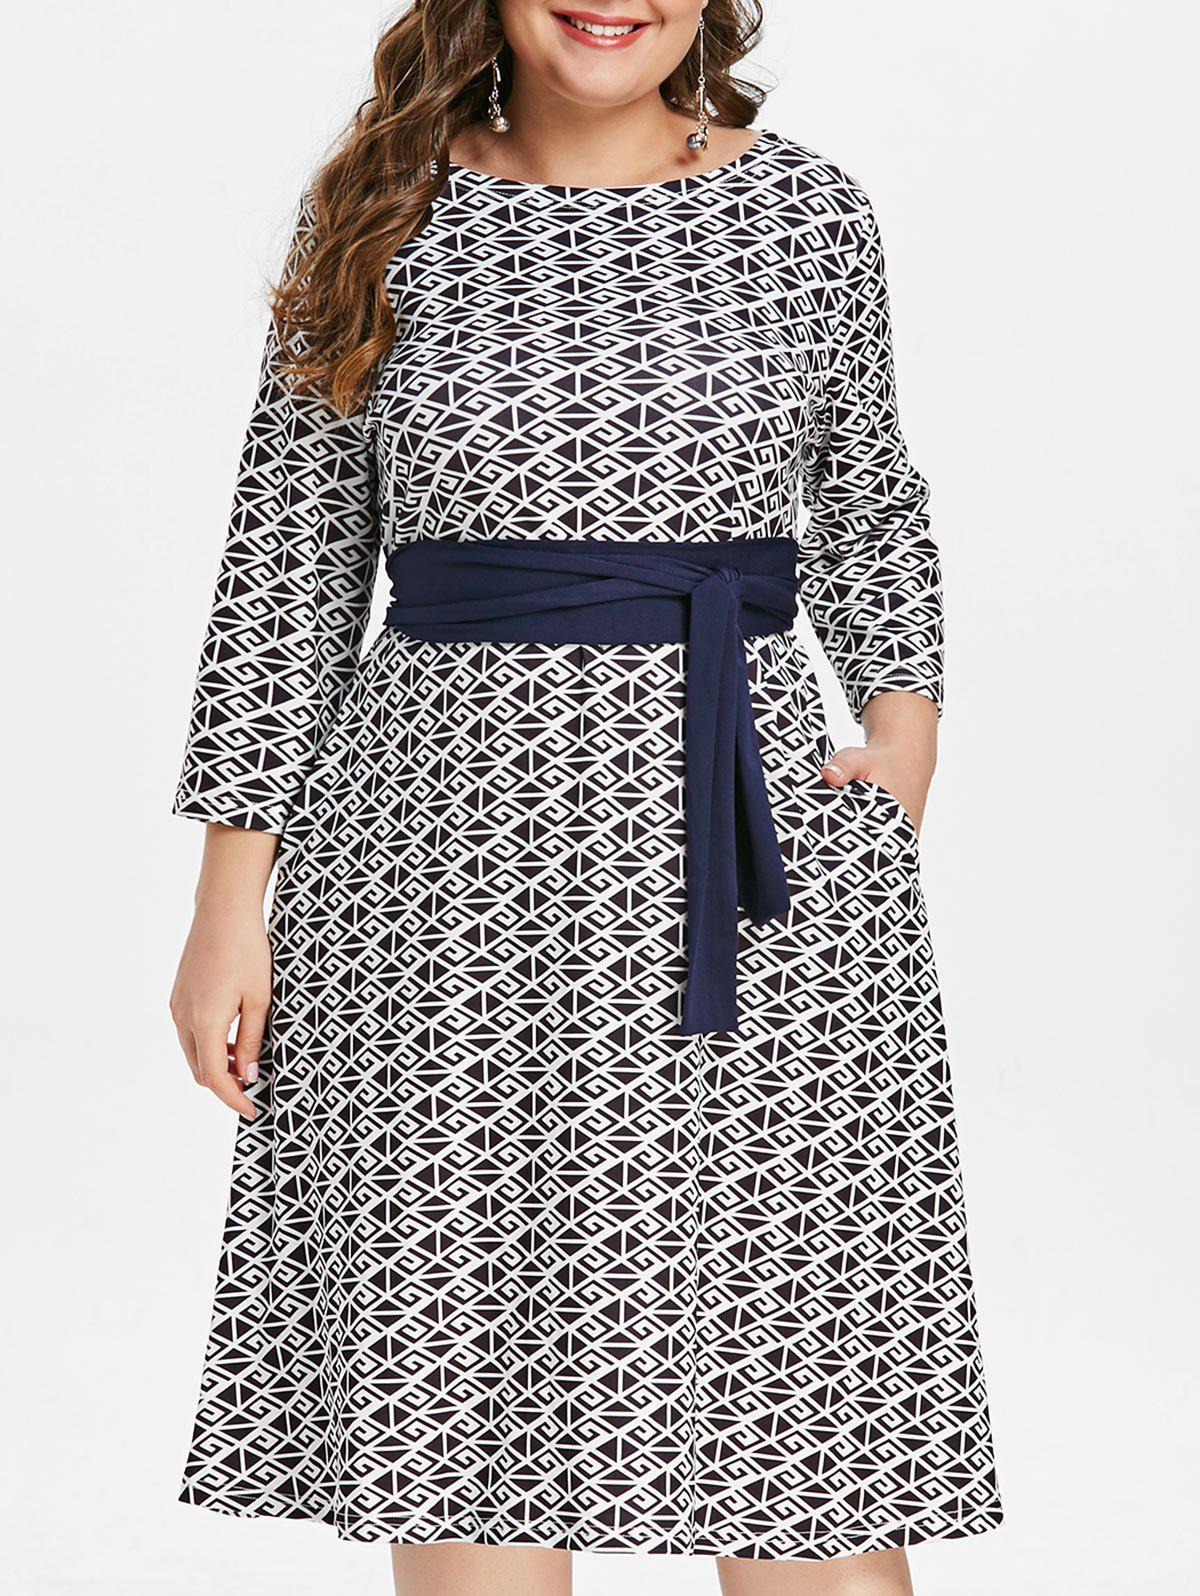 Fashion Printed Plus Size Round Neck Fit and Flare Dress